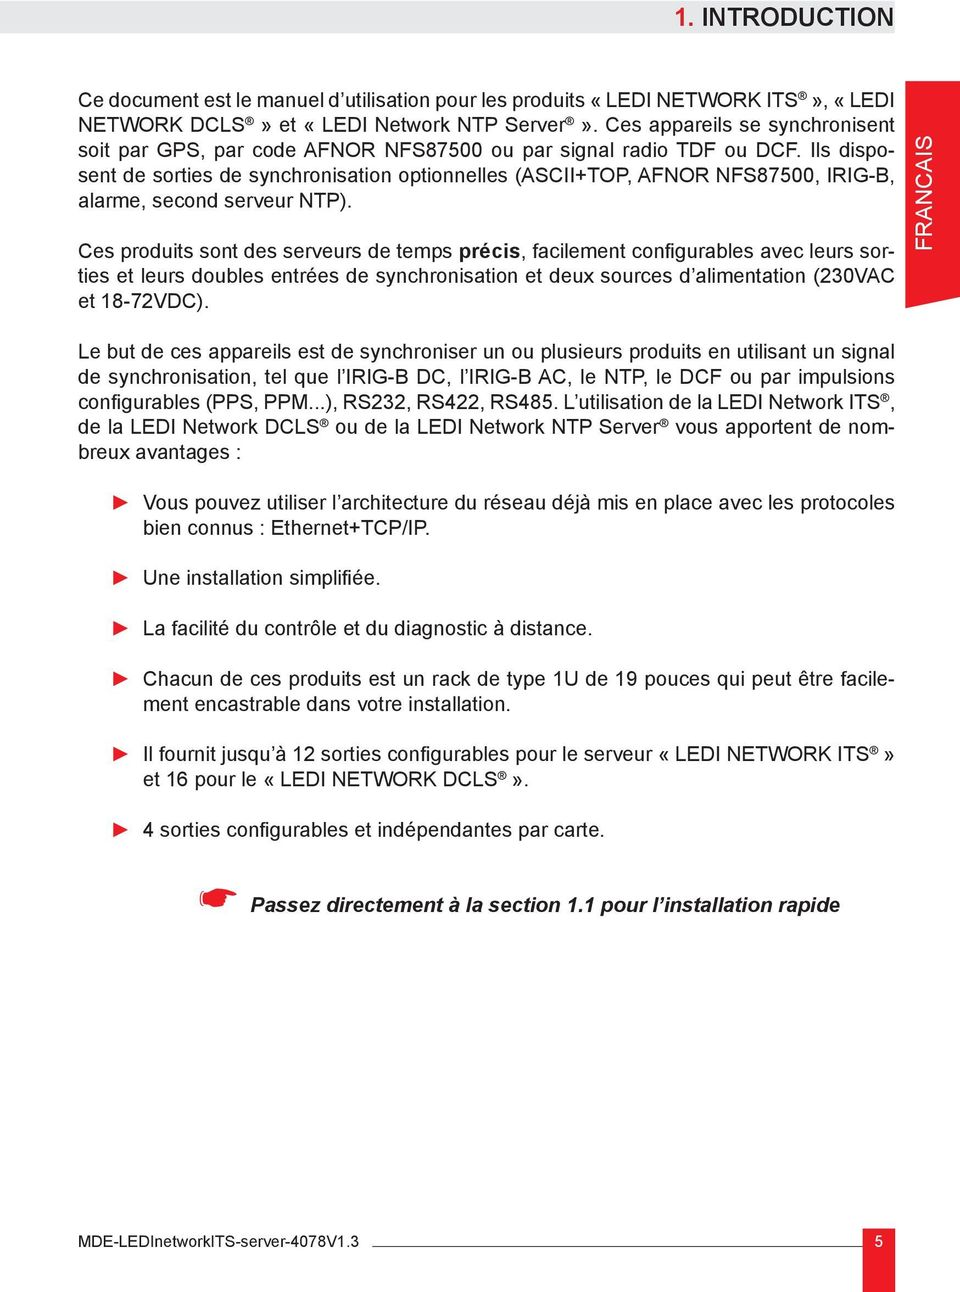 Ils disposent de sorties de synchronisation optionnelles (ASCII+TOP, AFNOR NFS87500, IRIG-B, alarme, second serveur NTP).